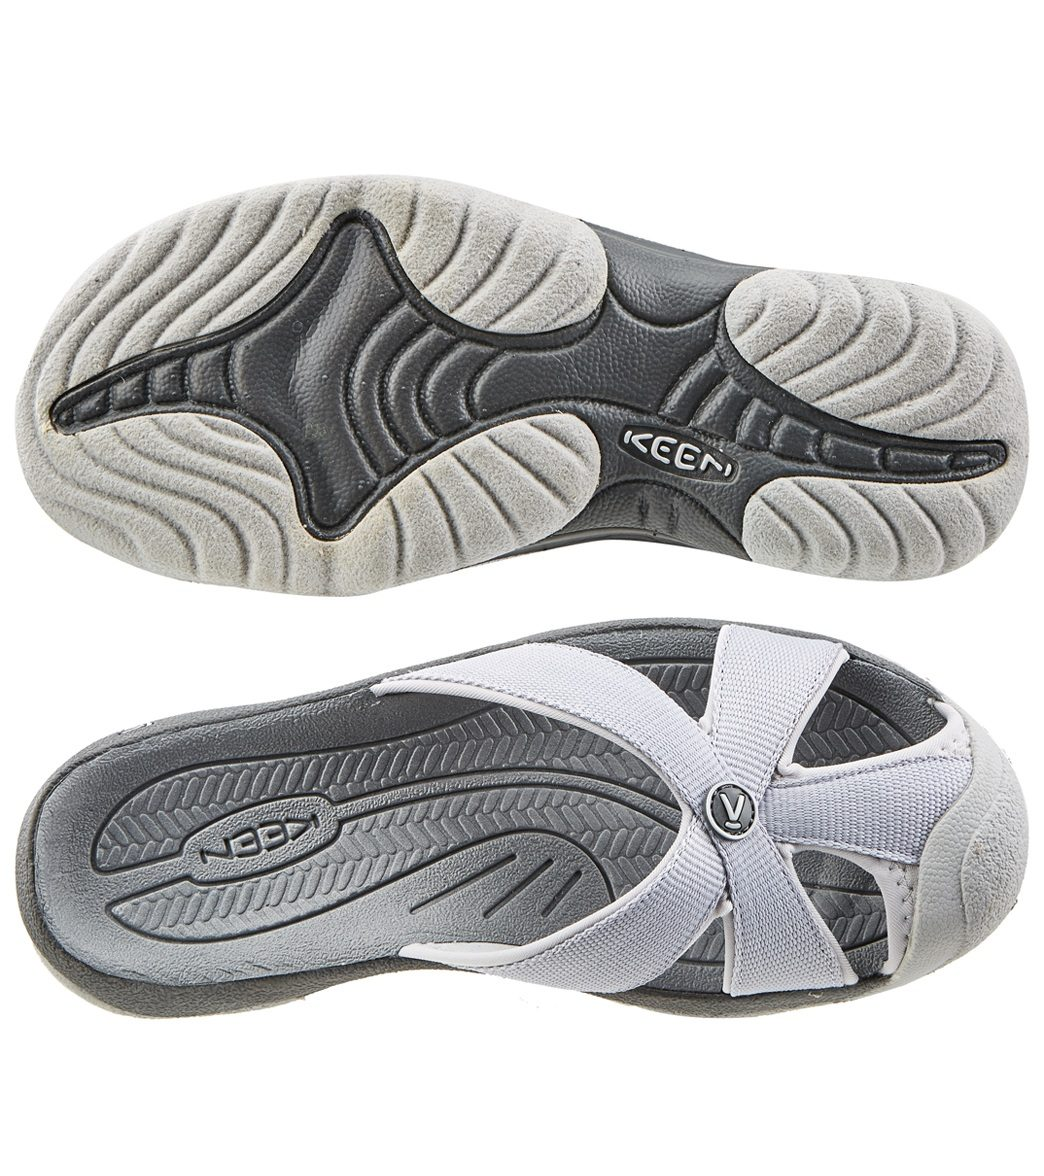 Best Price On Keen Water Shoes In Size  Women